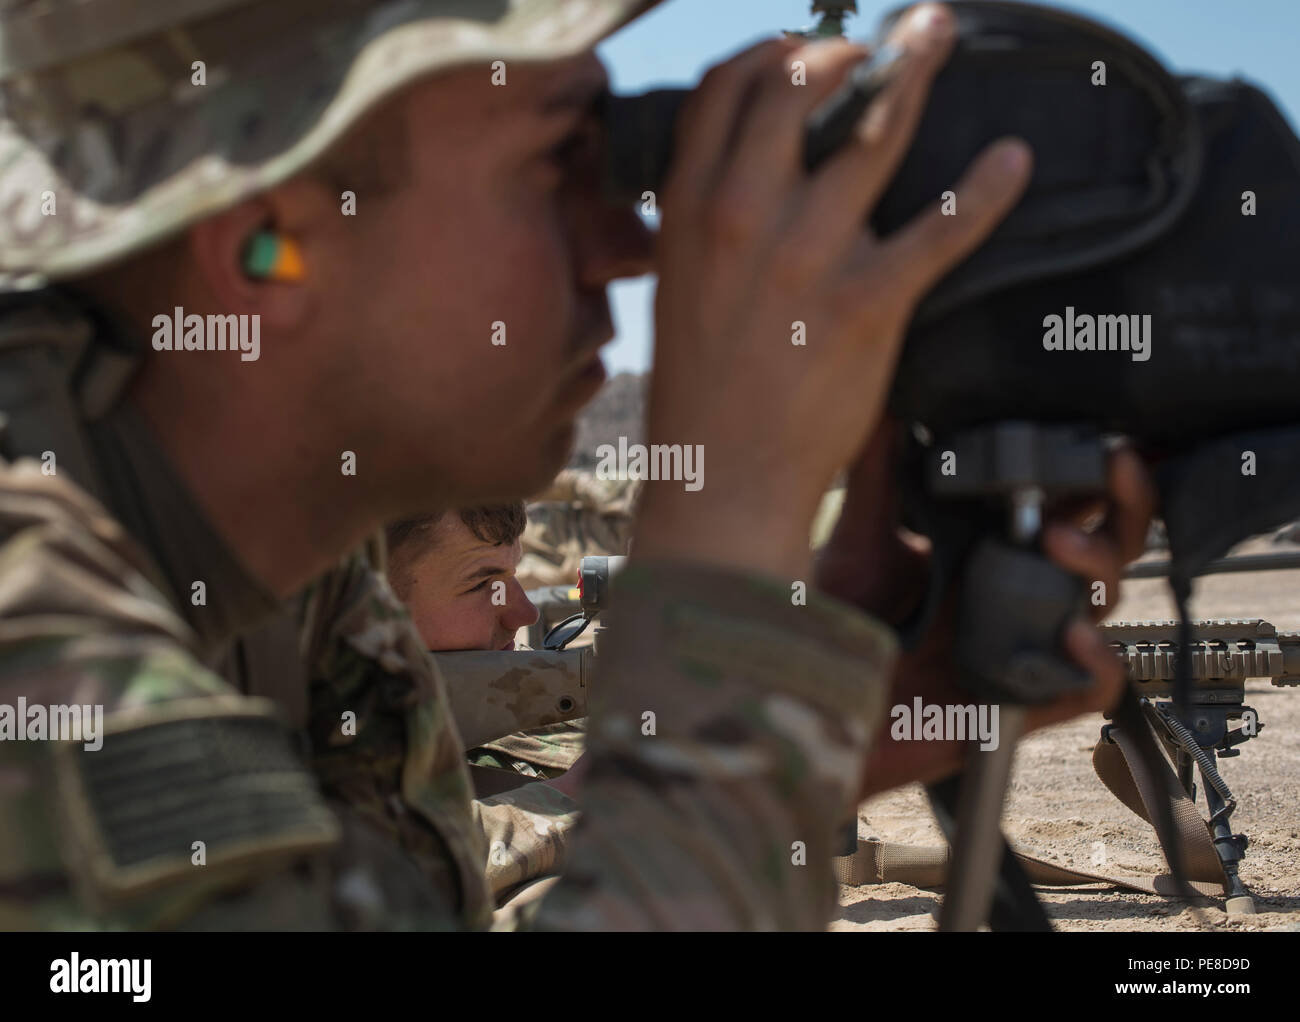 M110 Stock Photos & M110 Stock Images - Page 2 - Alamy